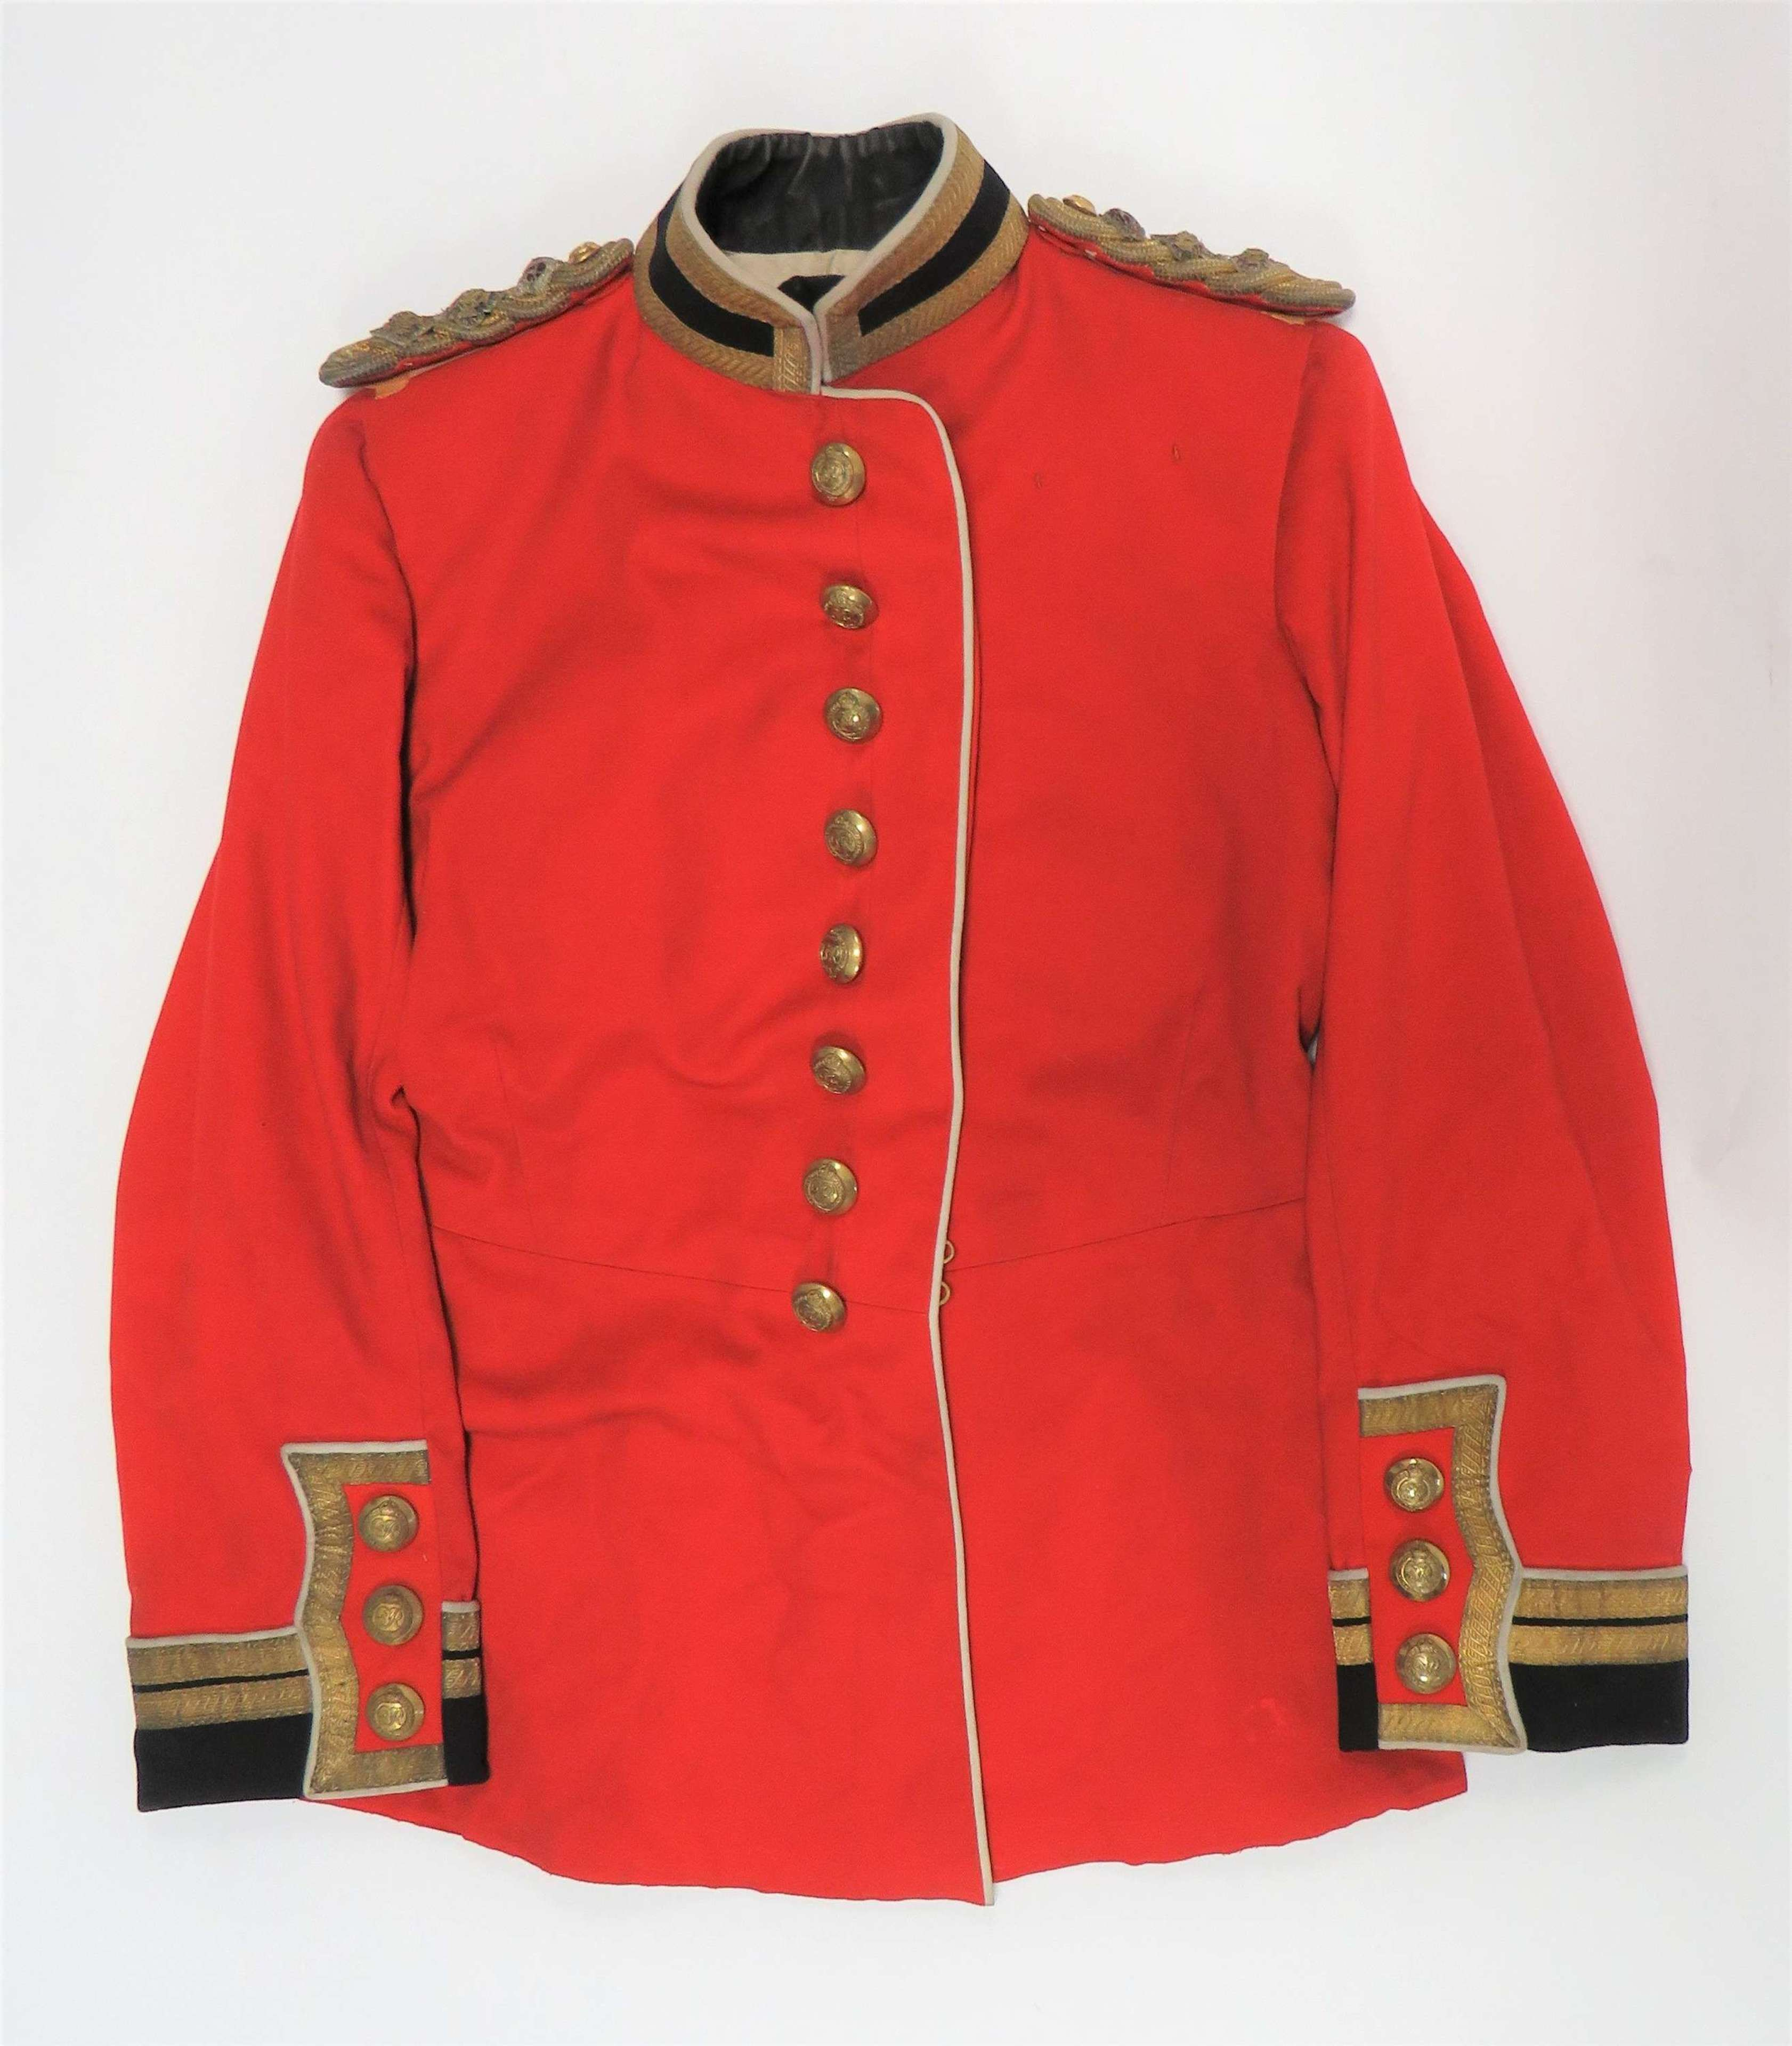 Post 1936 Staff Colonels Officers Scarlet Dress Tunic